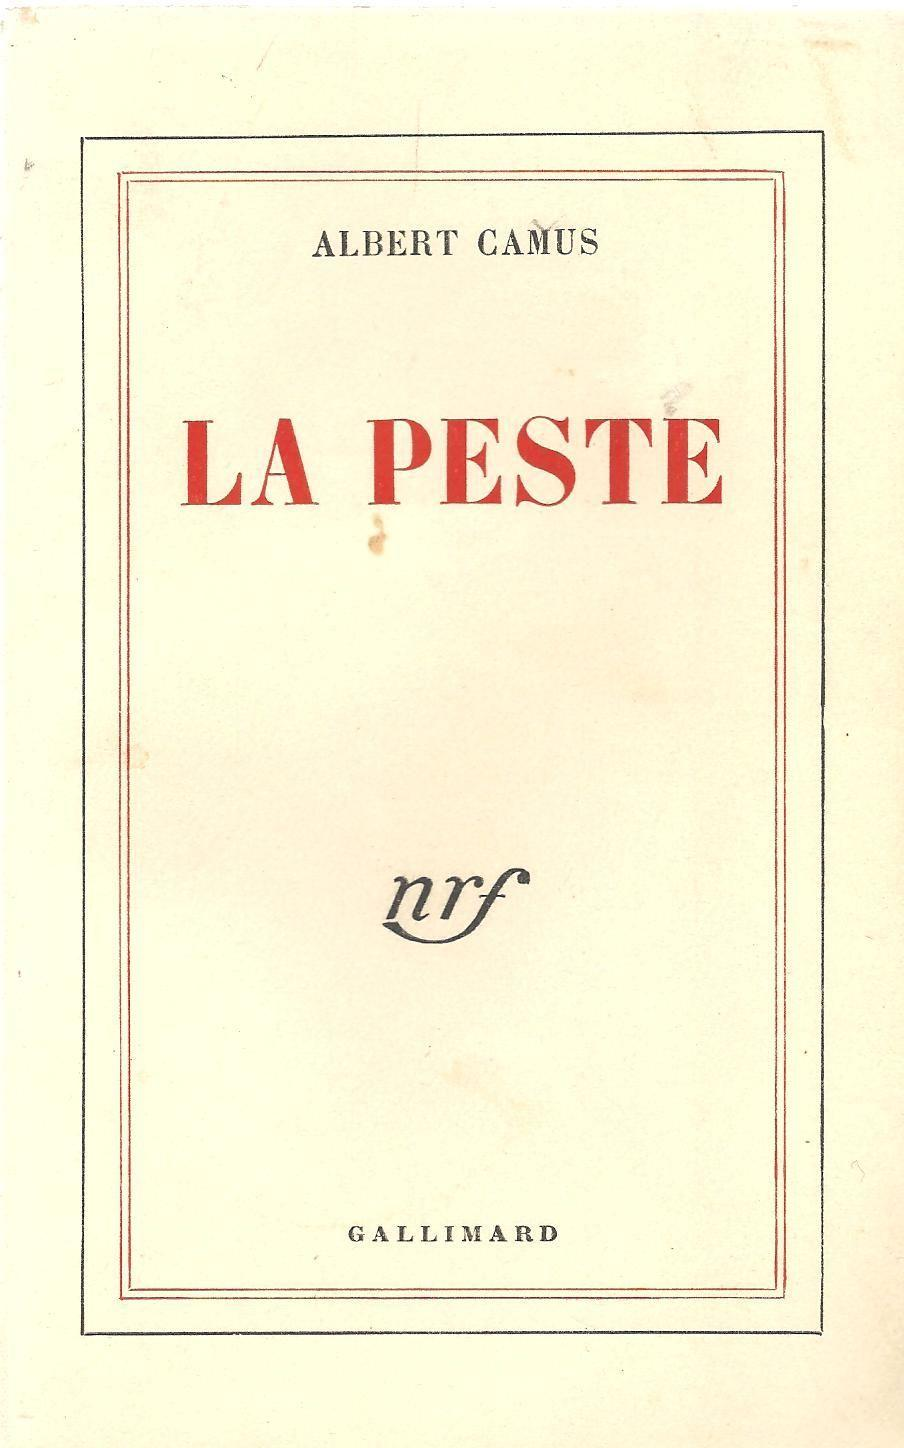 https://upload.wikimedia.org/wikipedia/commons/c/c6/La_Peste_book_cover.jpg